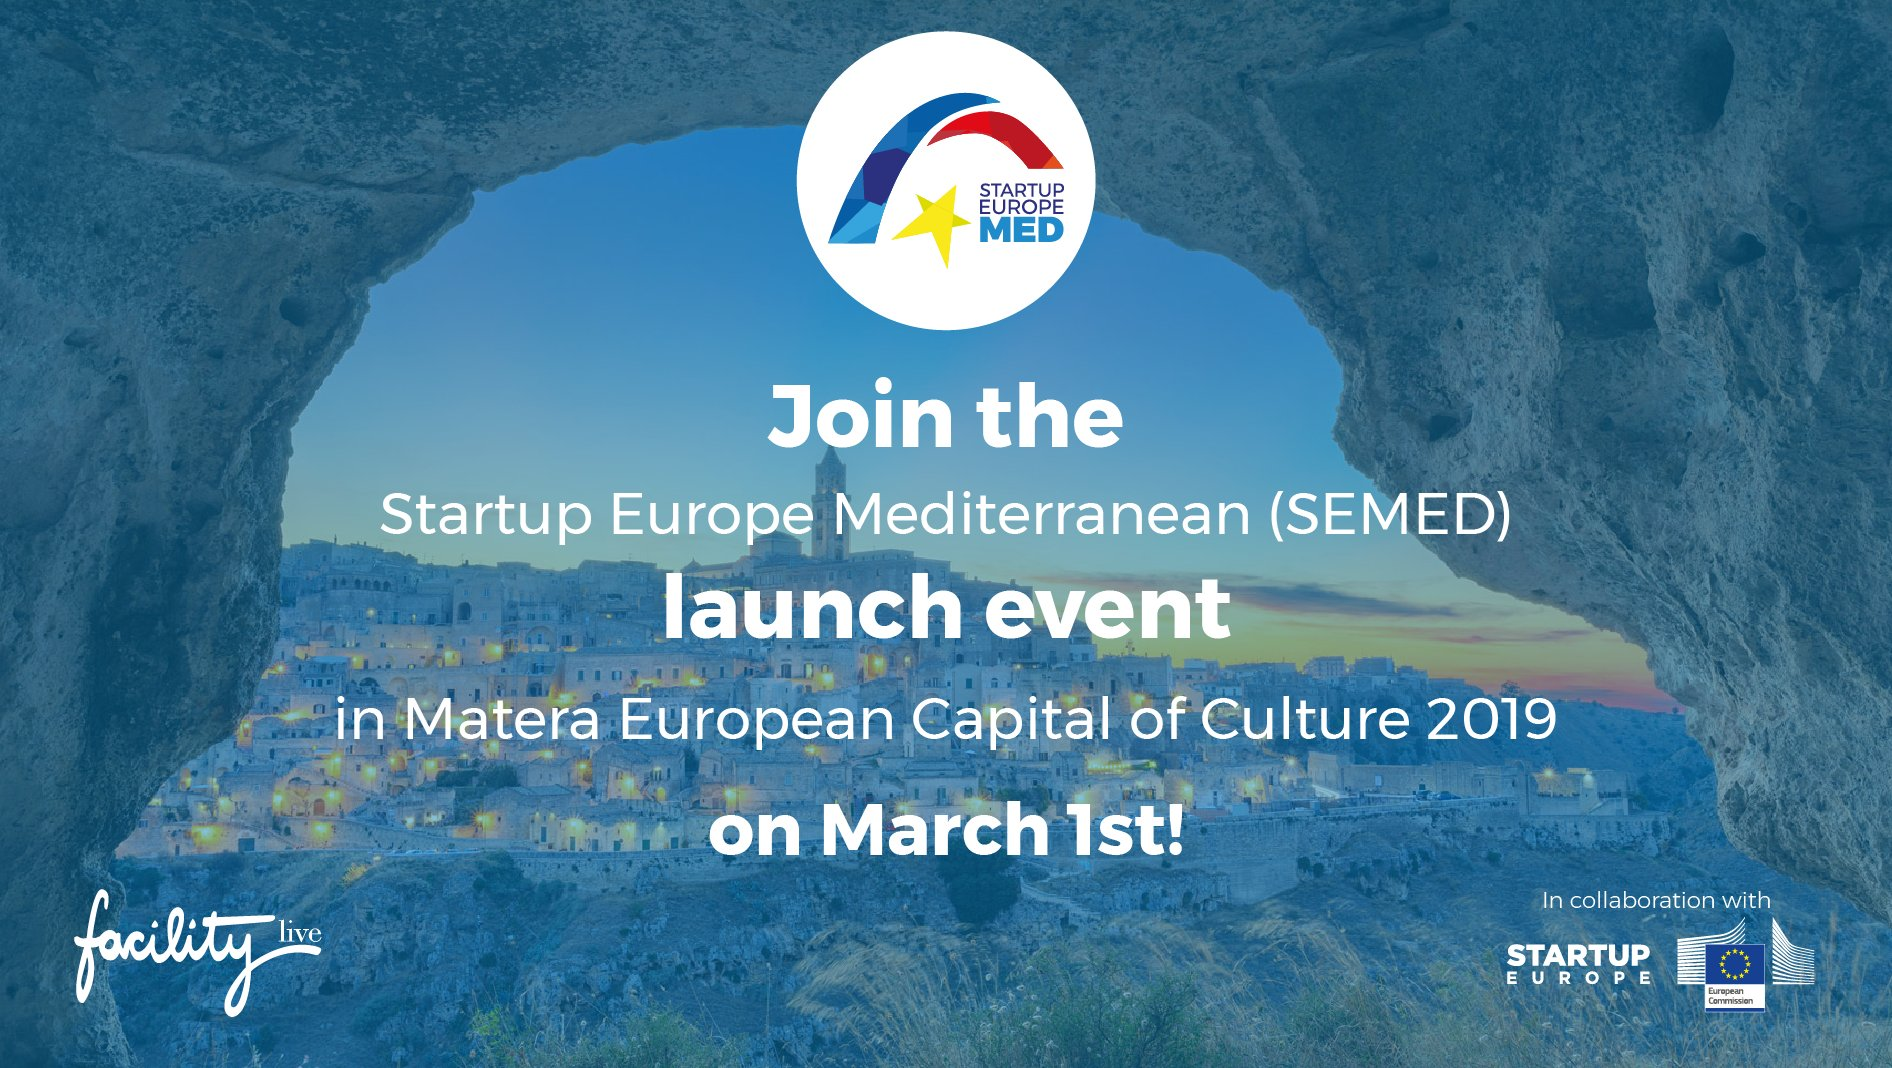 SEMED Launch Event - 2019, March 1st